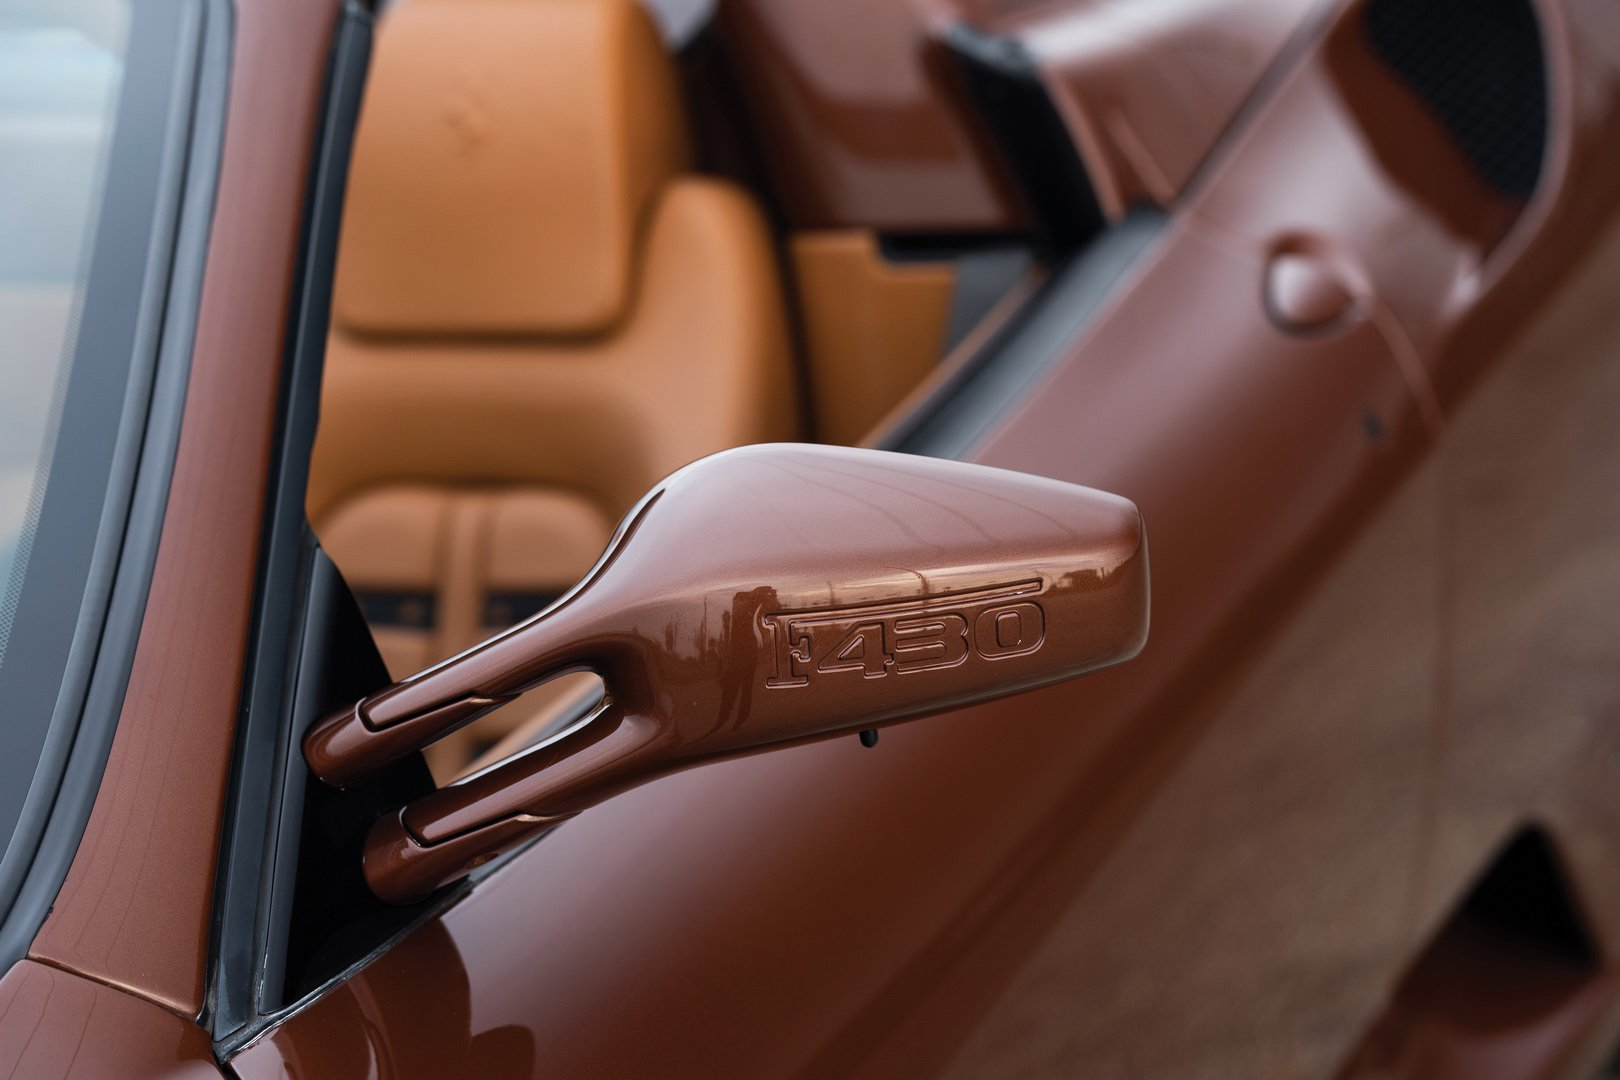 Ferrari F430 Spider in brown Classic Marrone color (13)